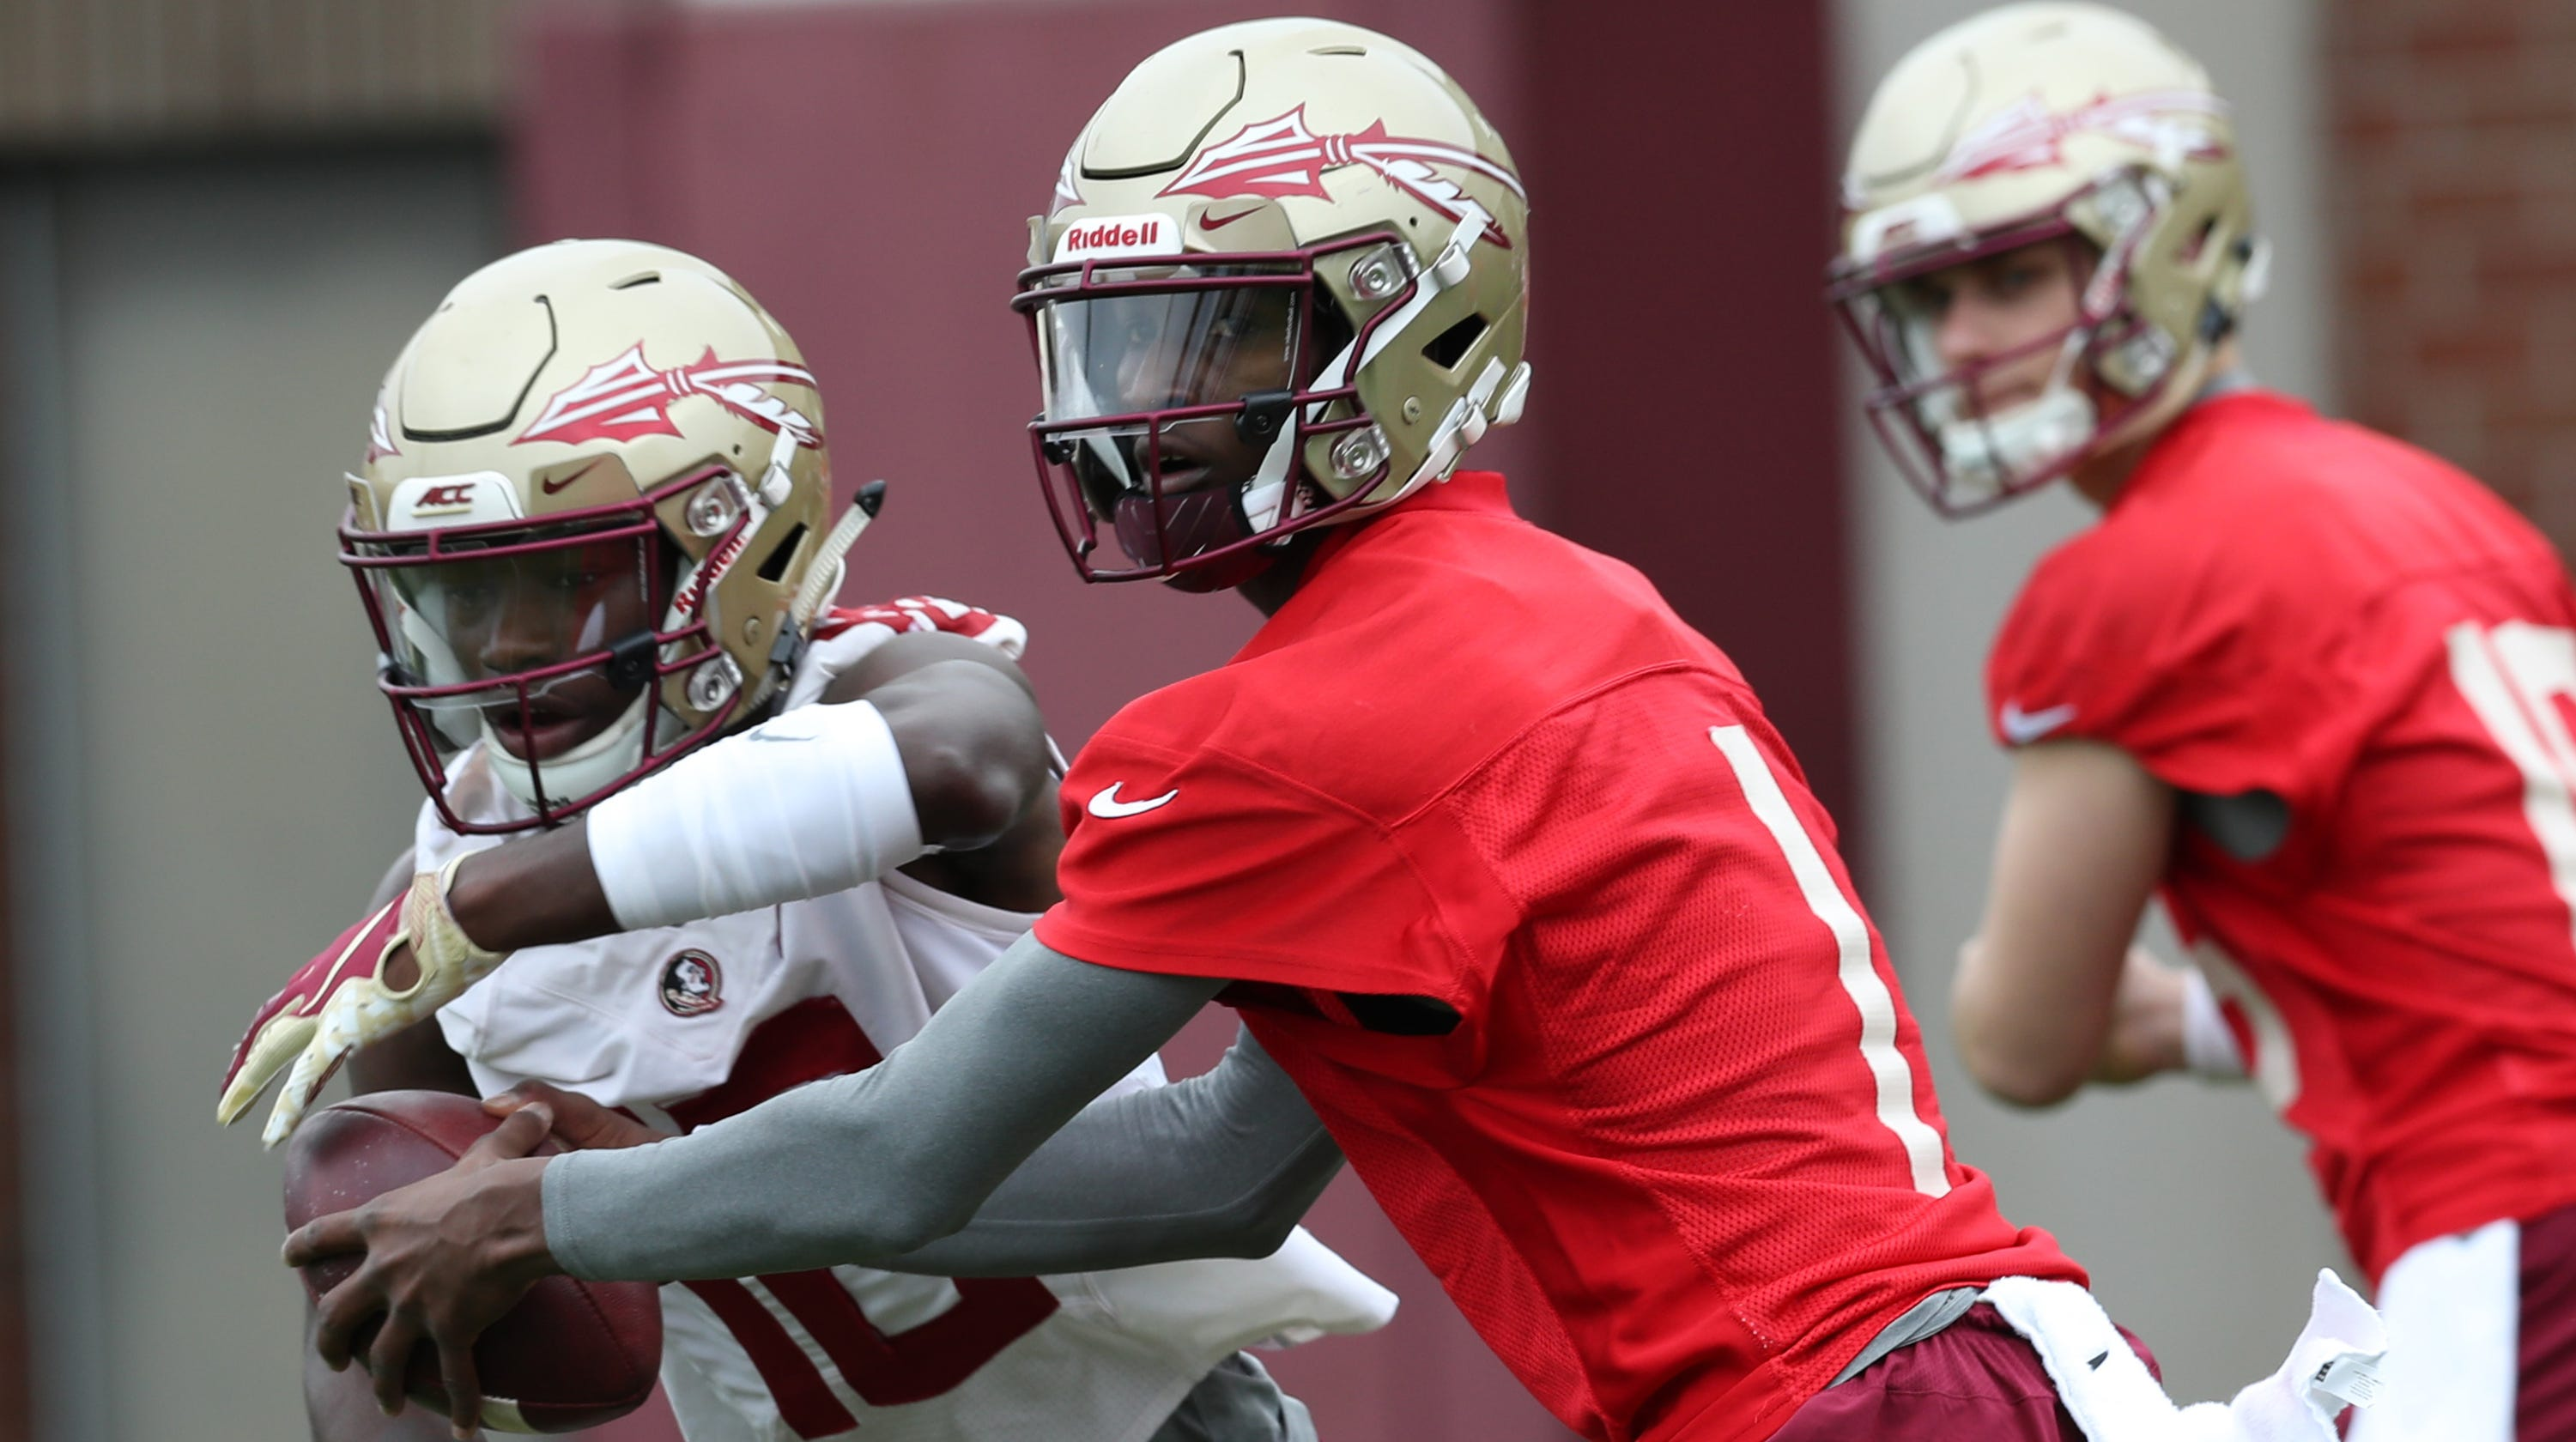 Spring Game: What Should Florida State Fans Be Looking For?